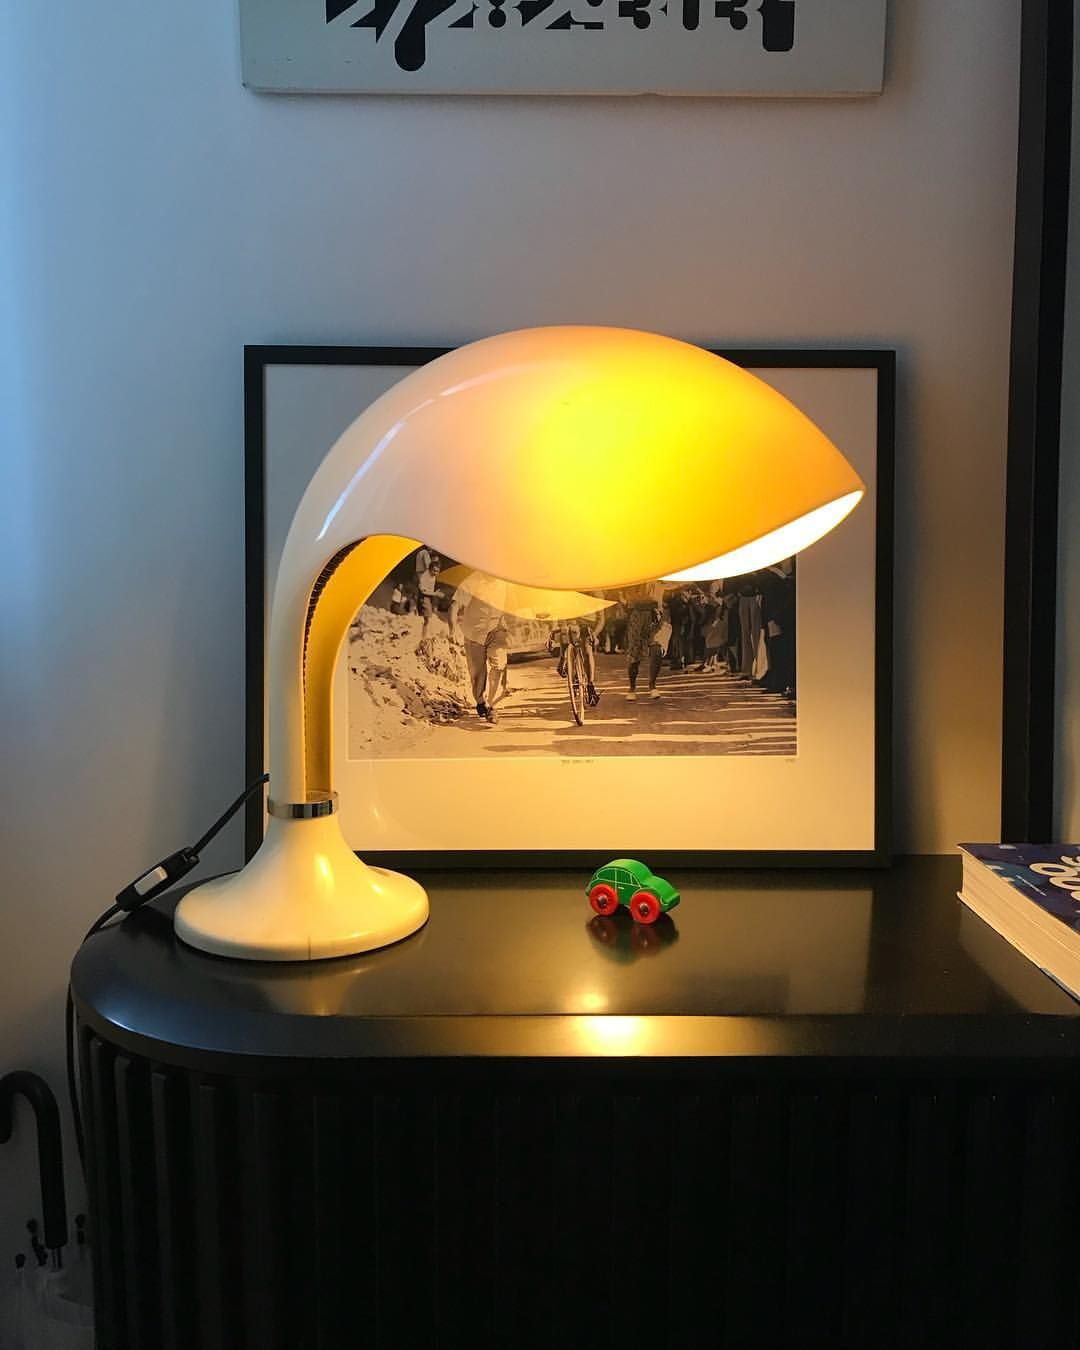 Marcello Cuneo Rhea Minor Amphaglas 1970 Luminaire Lamp Lumiere